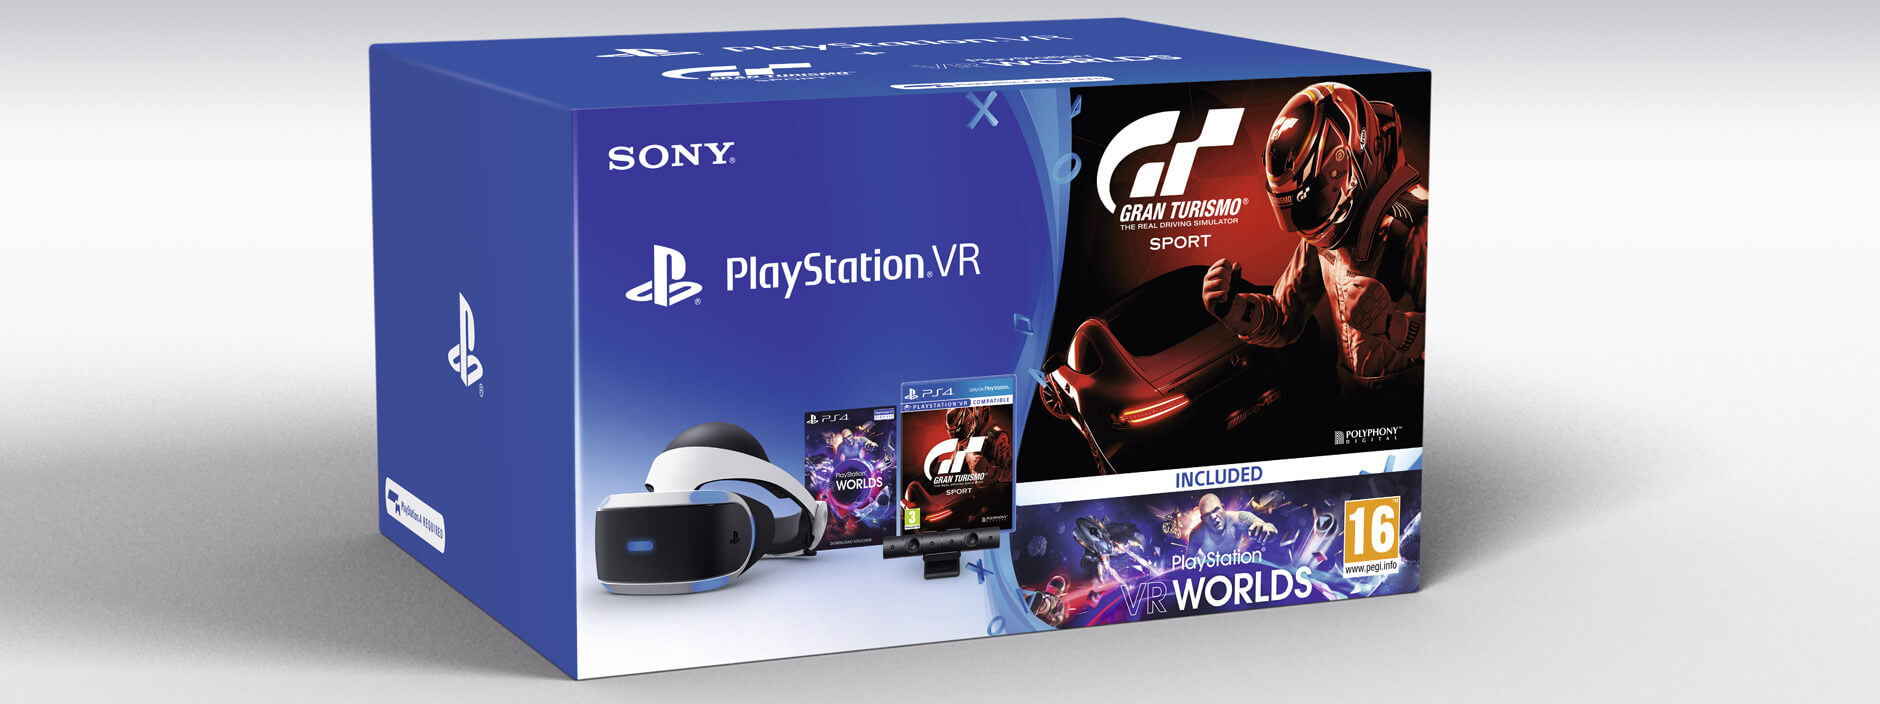 Sony PS VR (CUH-ZVR1EY) Система виртуальной реальности для PlayStation 4 + игра VRW VCH + игра GTS + PS4 Камера v2 [PS719951162] приставка sony playstation 4 slim 1tb fifa18